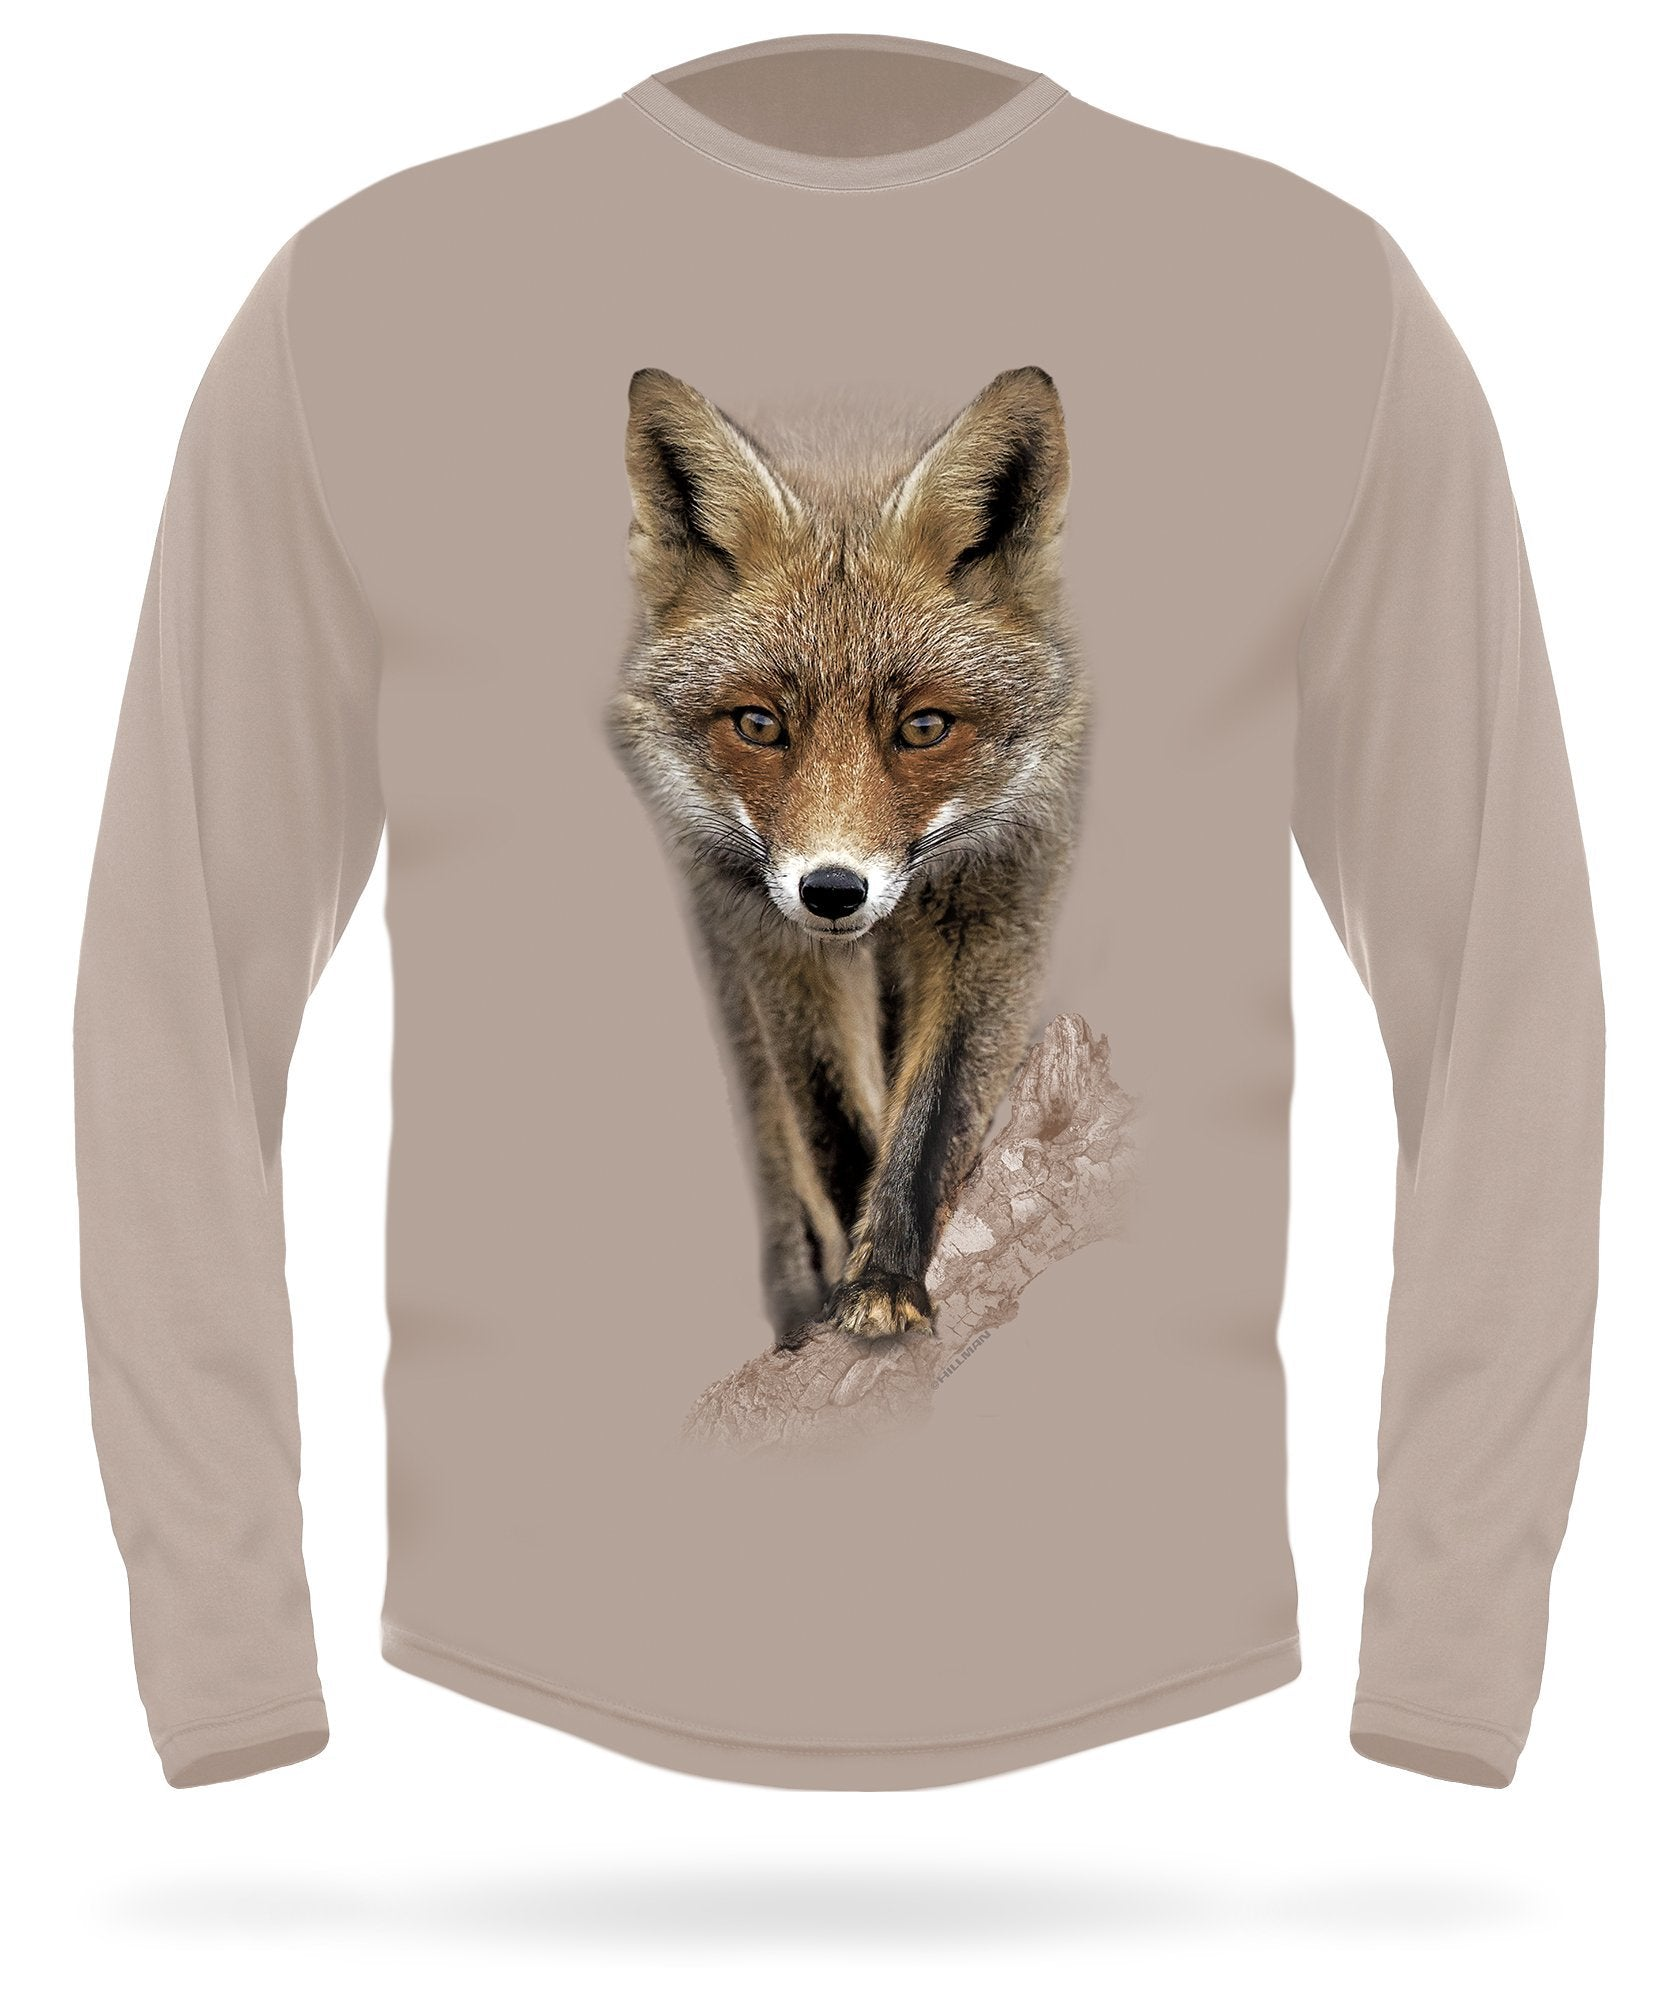 Red Fox T-shirt long sleeve -  HILLMAN® hunting gear